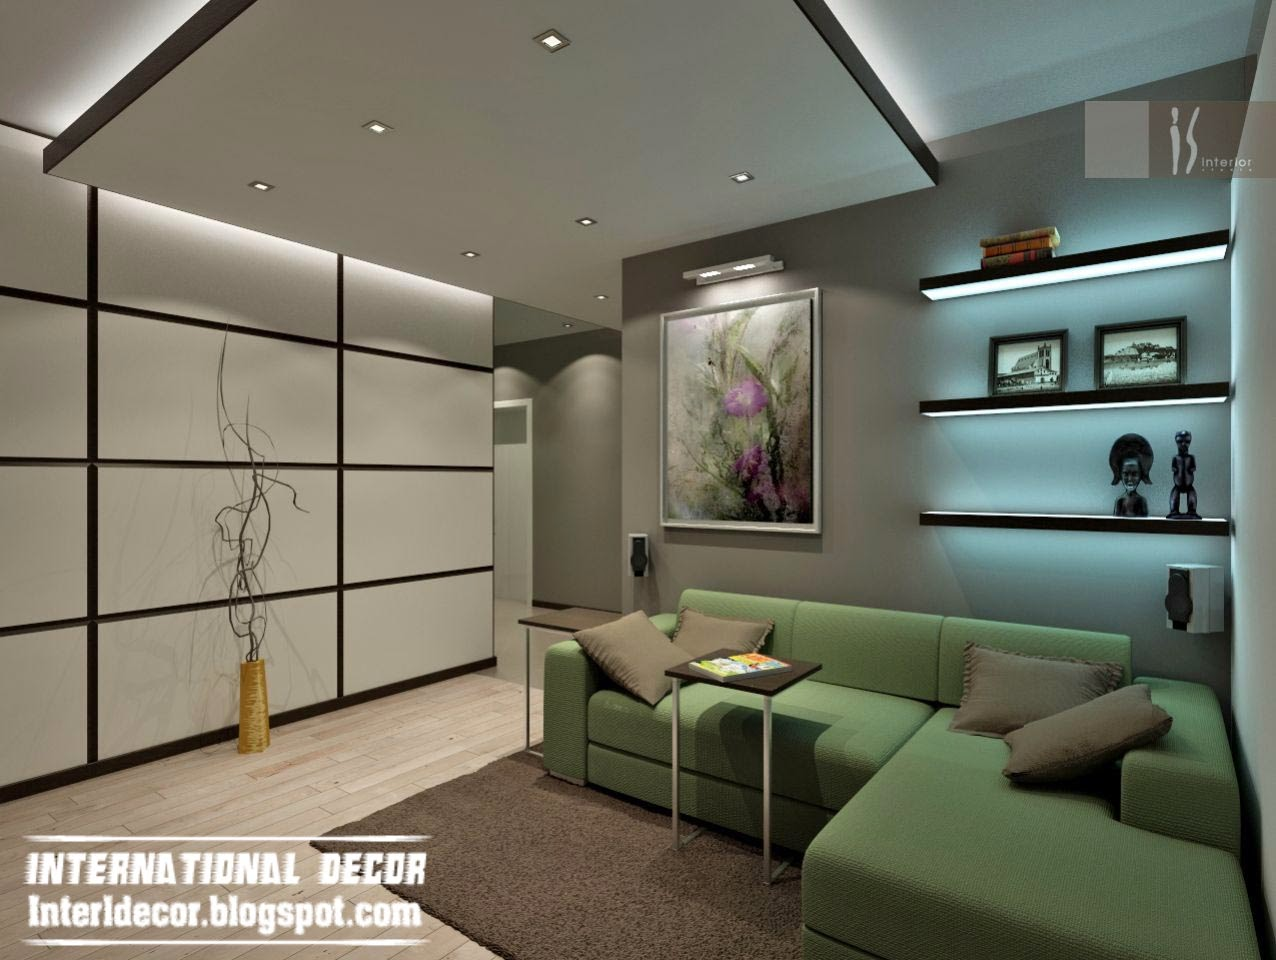 Living room led ceiling lightsWarisan Lighting